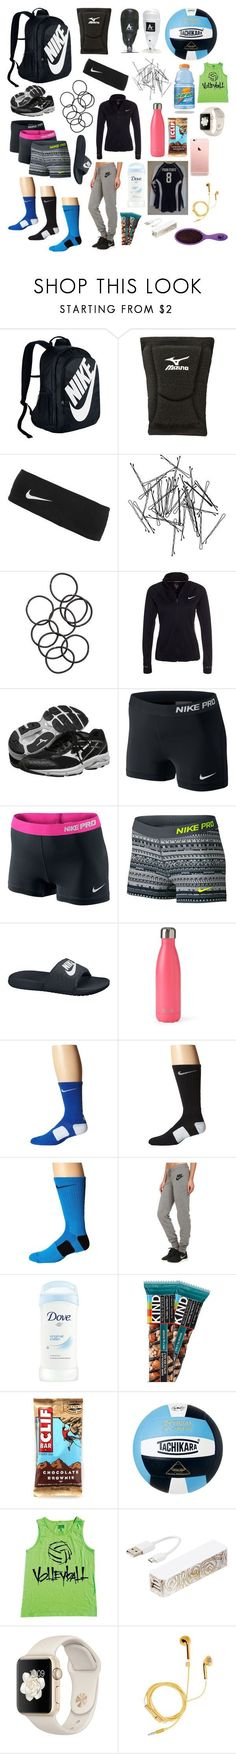 """""""What's in my volleyball bag"""" by southernannabelle on Polyvore featuring NIKE, Mizuno, Monki, H&M, S'well, Triple C Designs, PhunkeeTree and The Wet Brush"""